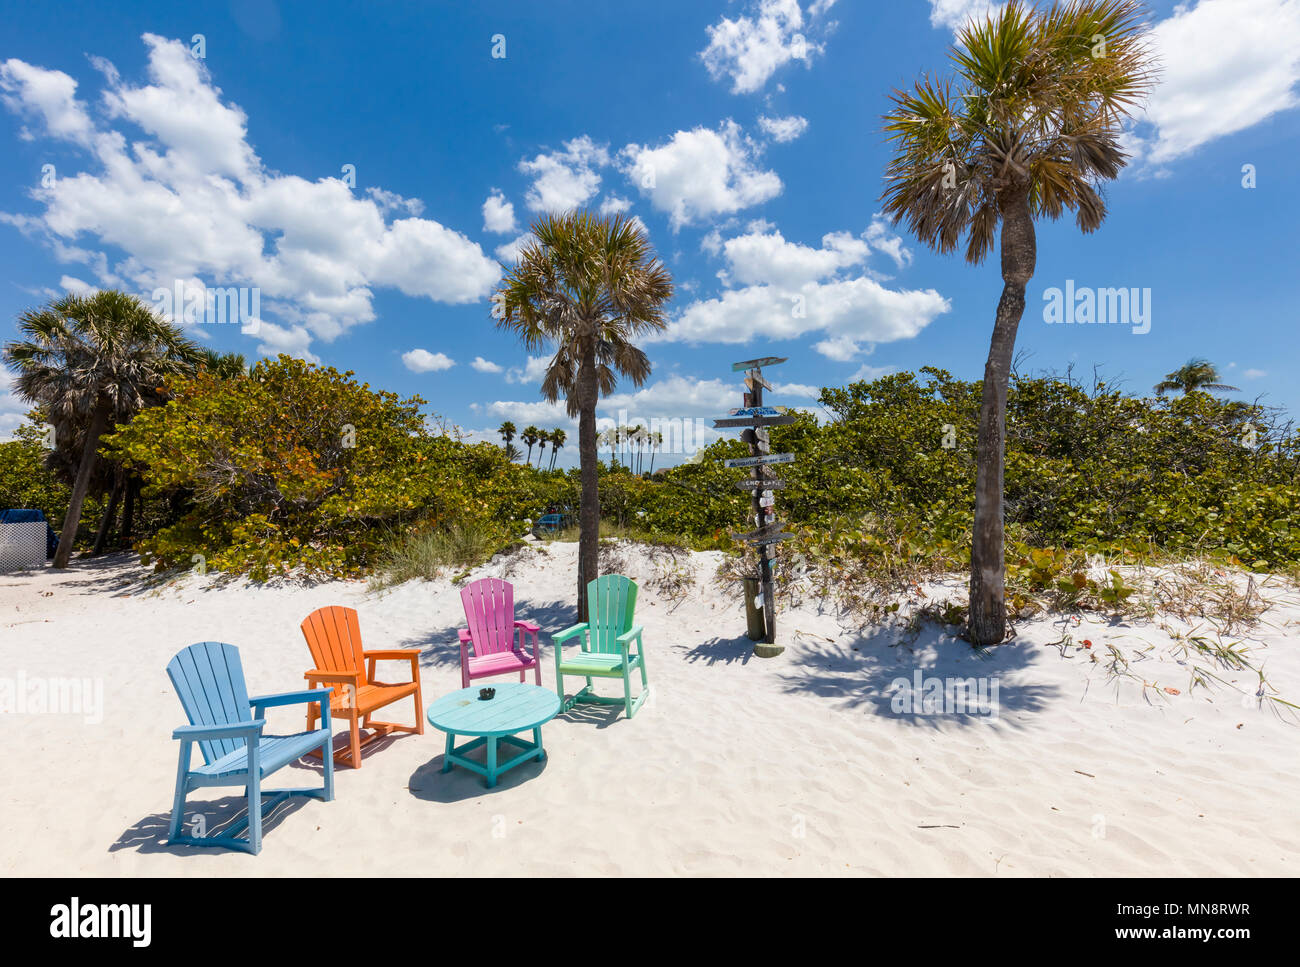 Colorful chairs on the Gulf of Mexico beach at the South Beach Bar & Grill in Boca Grande on Gasparilla Island Florida - Stock Image